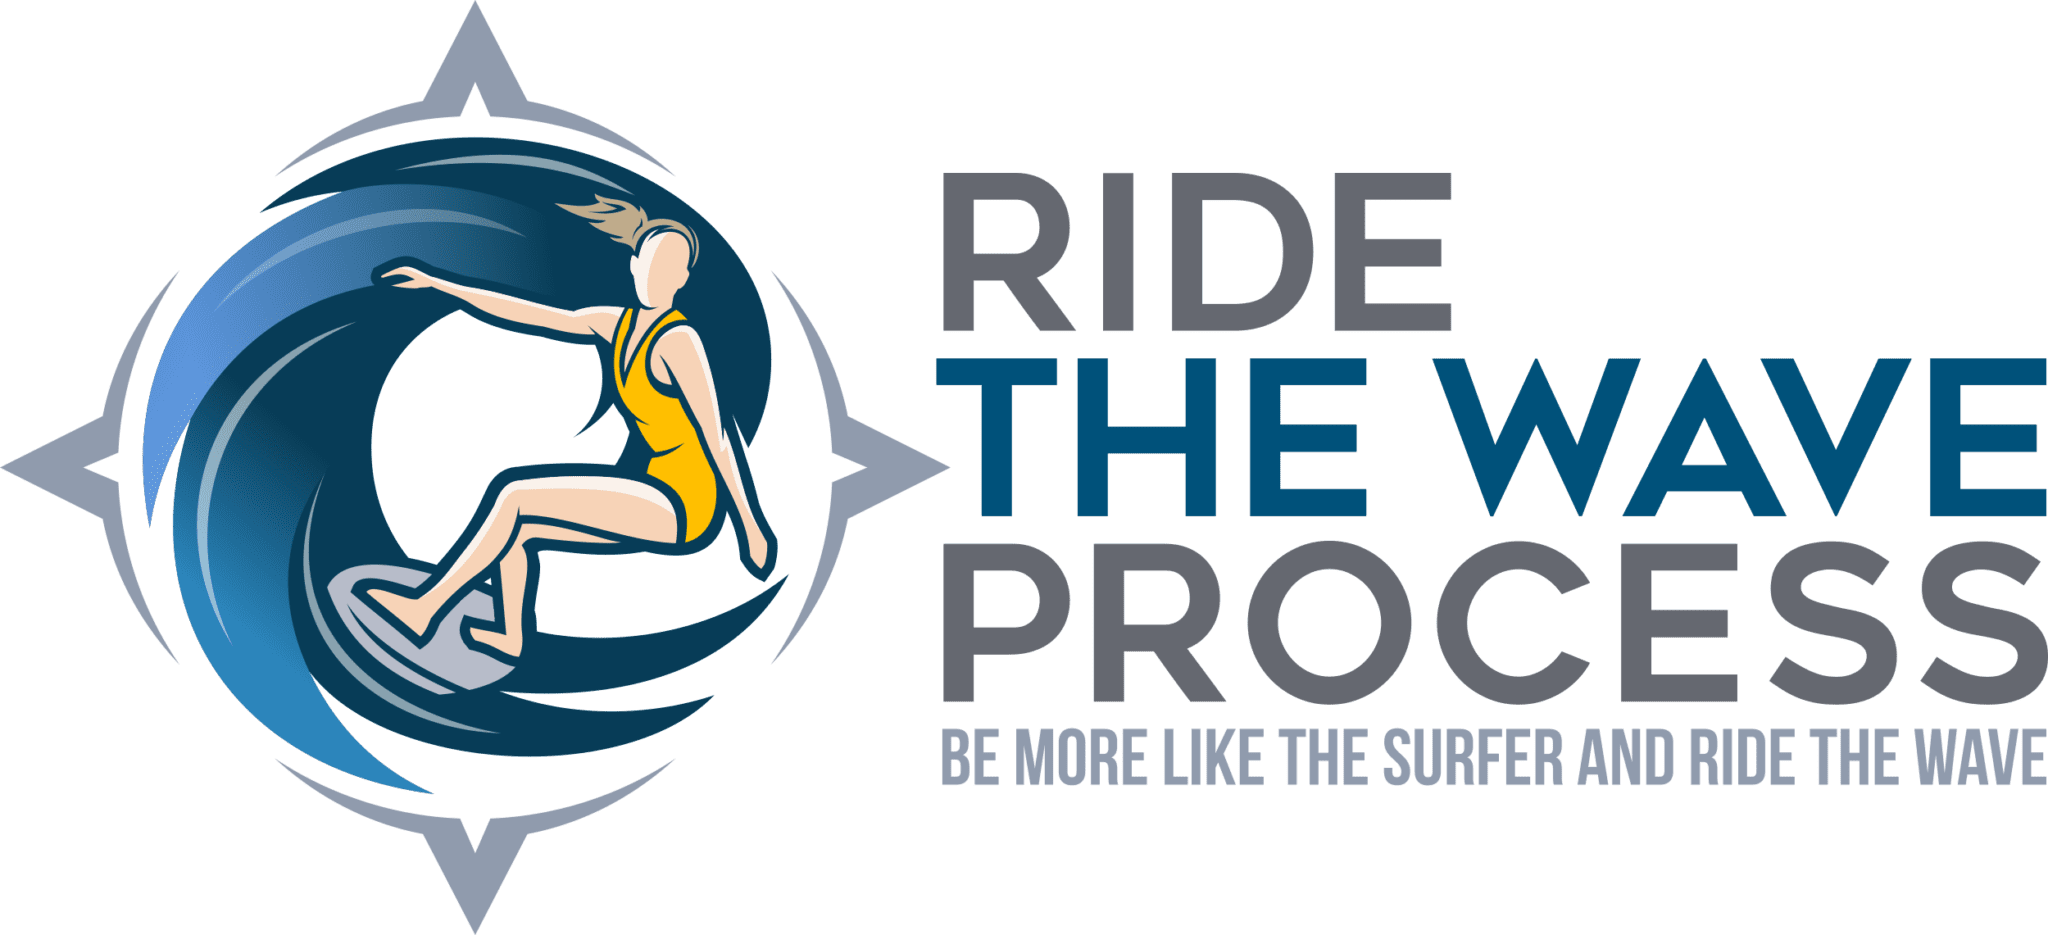 RIDE THE WAVE Process Logo